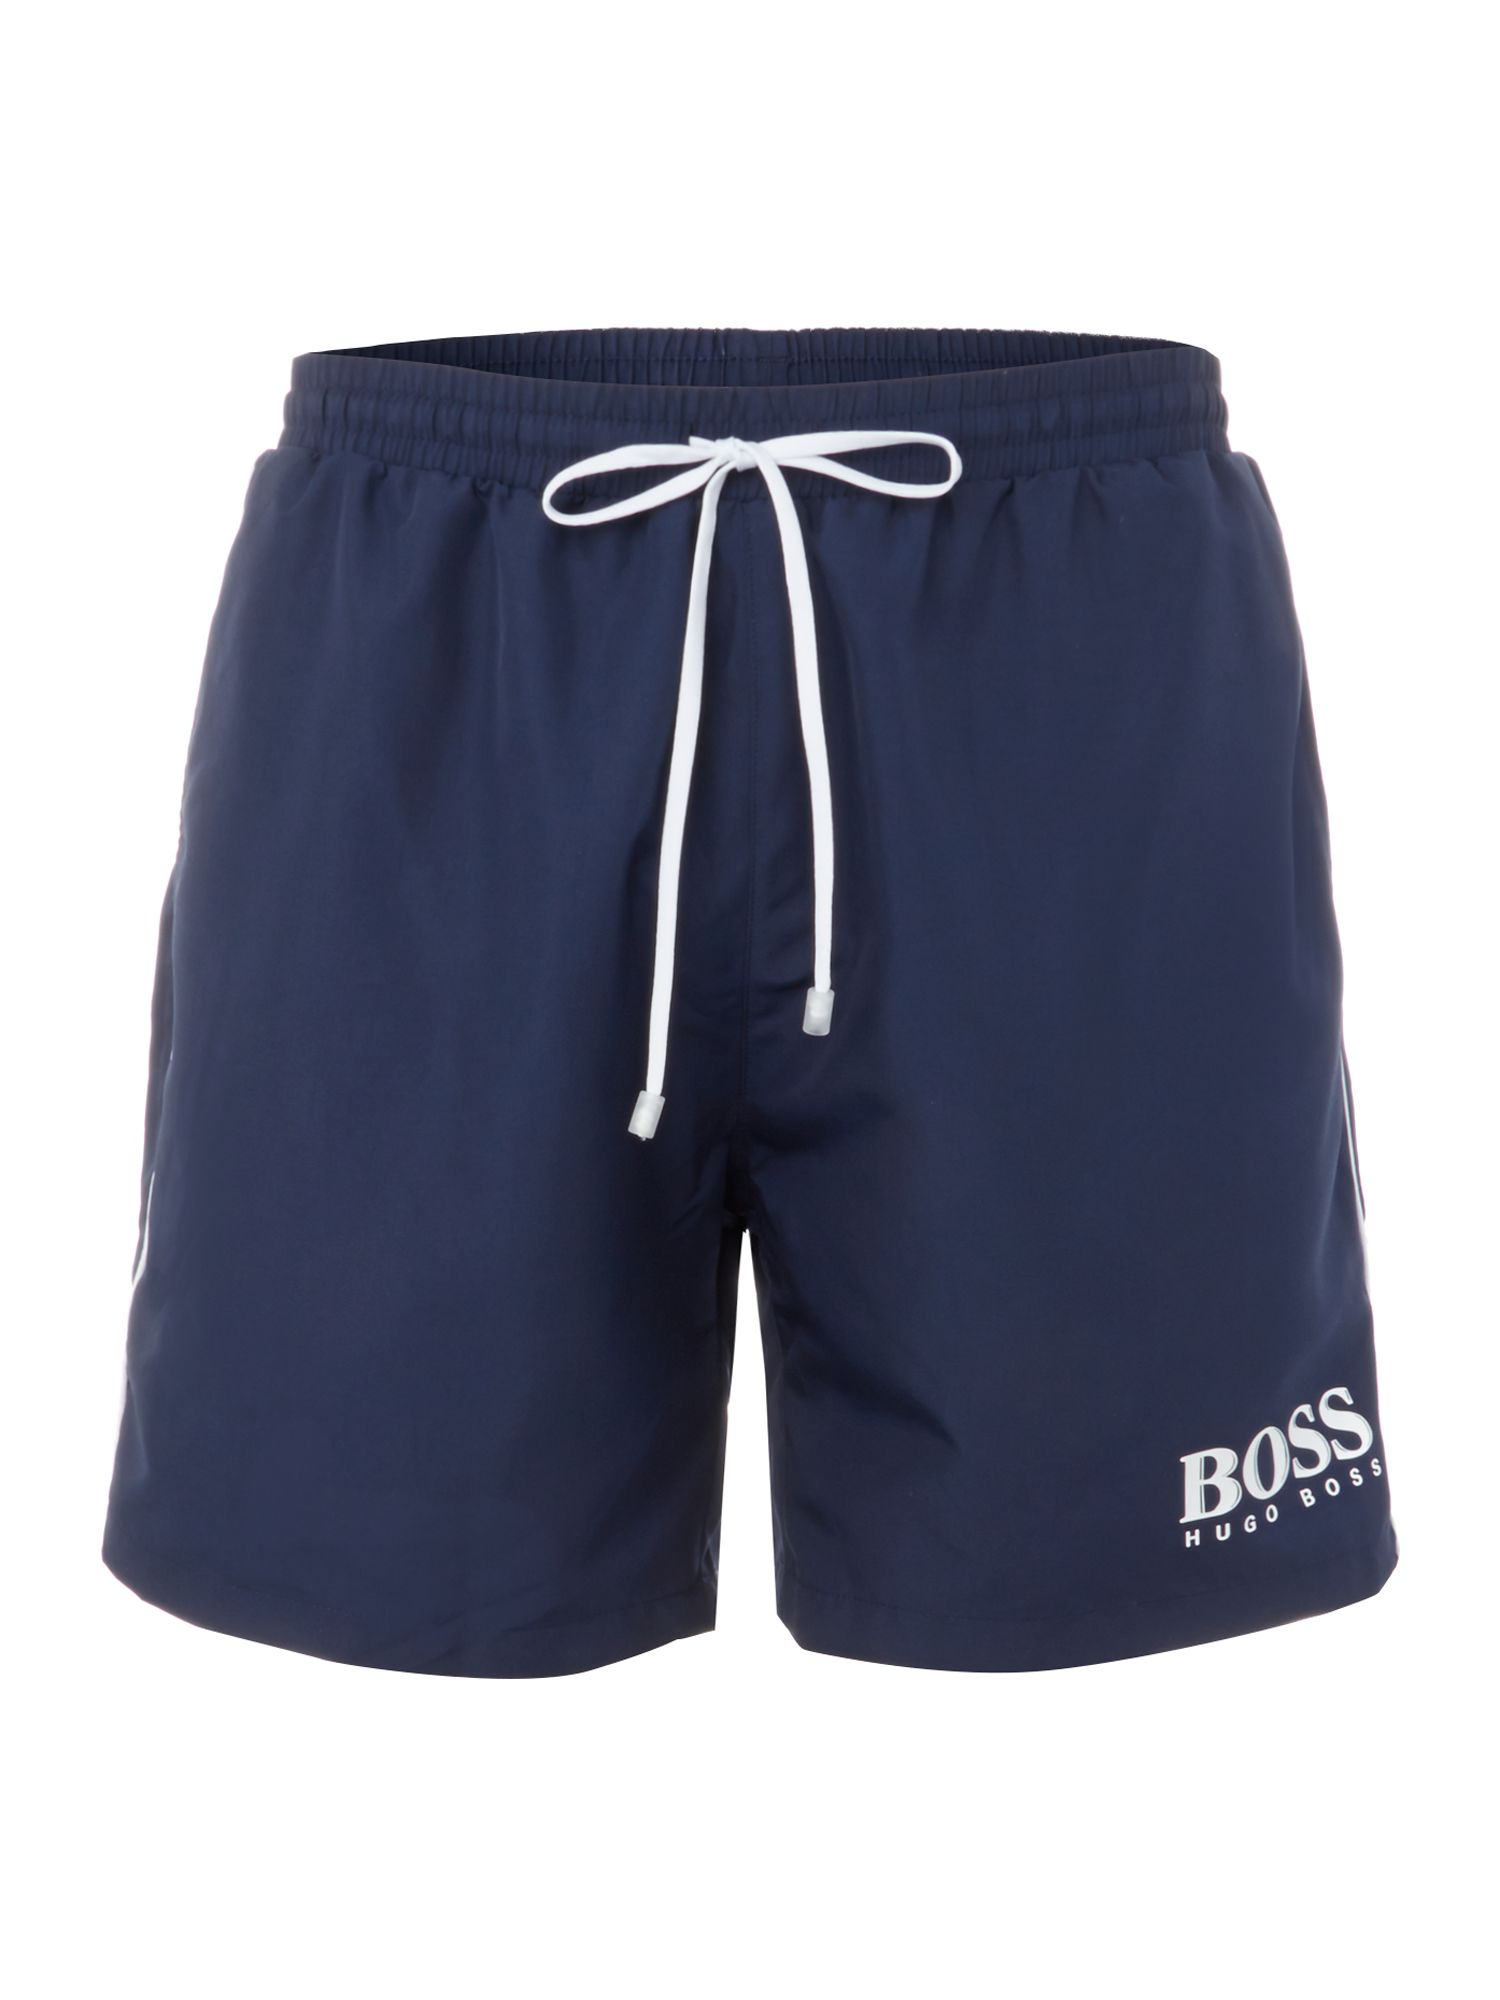 Men's Hugo Boss Classic swim shorts, Blue